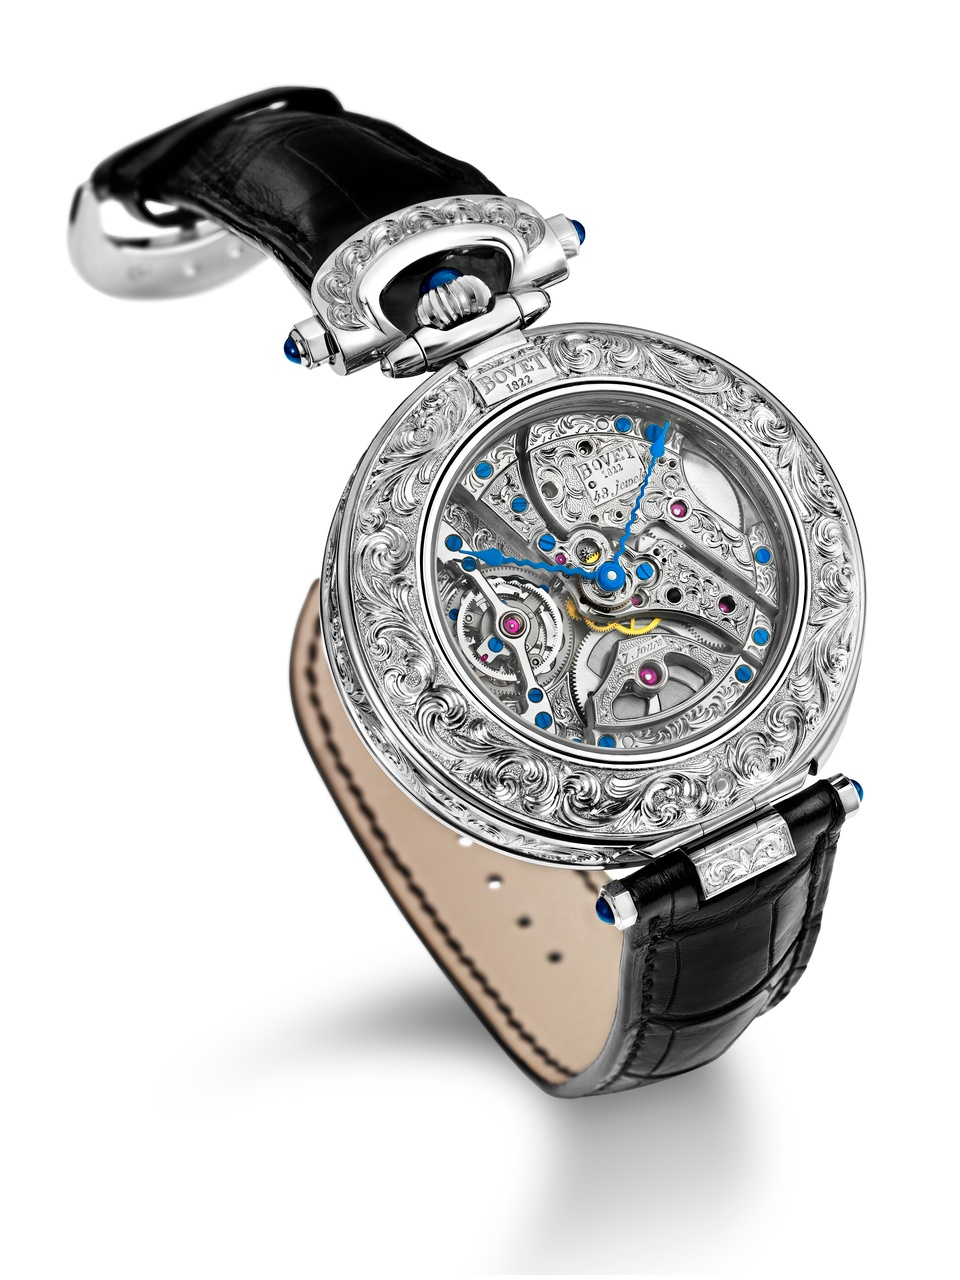 Bovet Watch   Amadeo Fleurier Grandes Complications   Ref. Nr. AIHS004-G1234    Call 312-944-3100  | For Availability